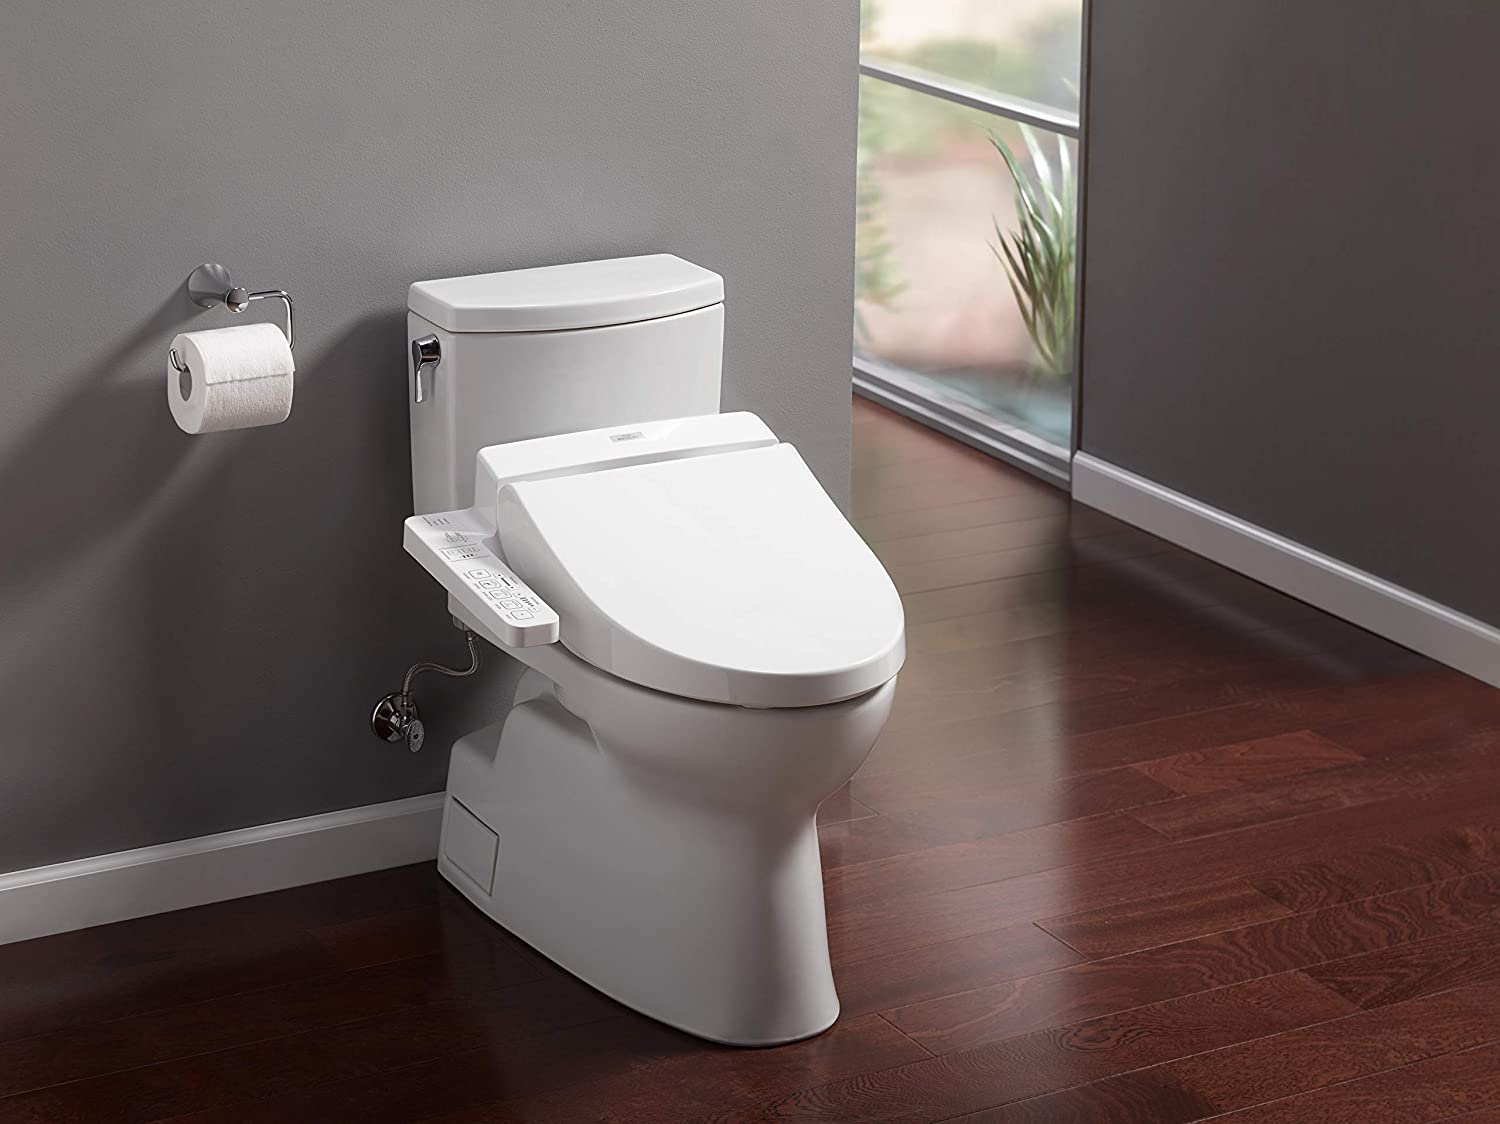 bidet on a toilet